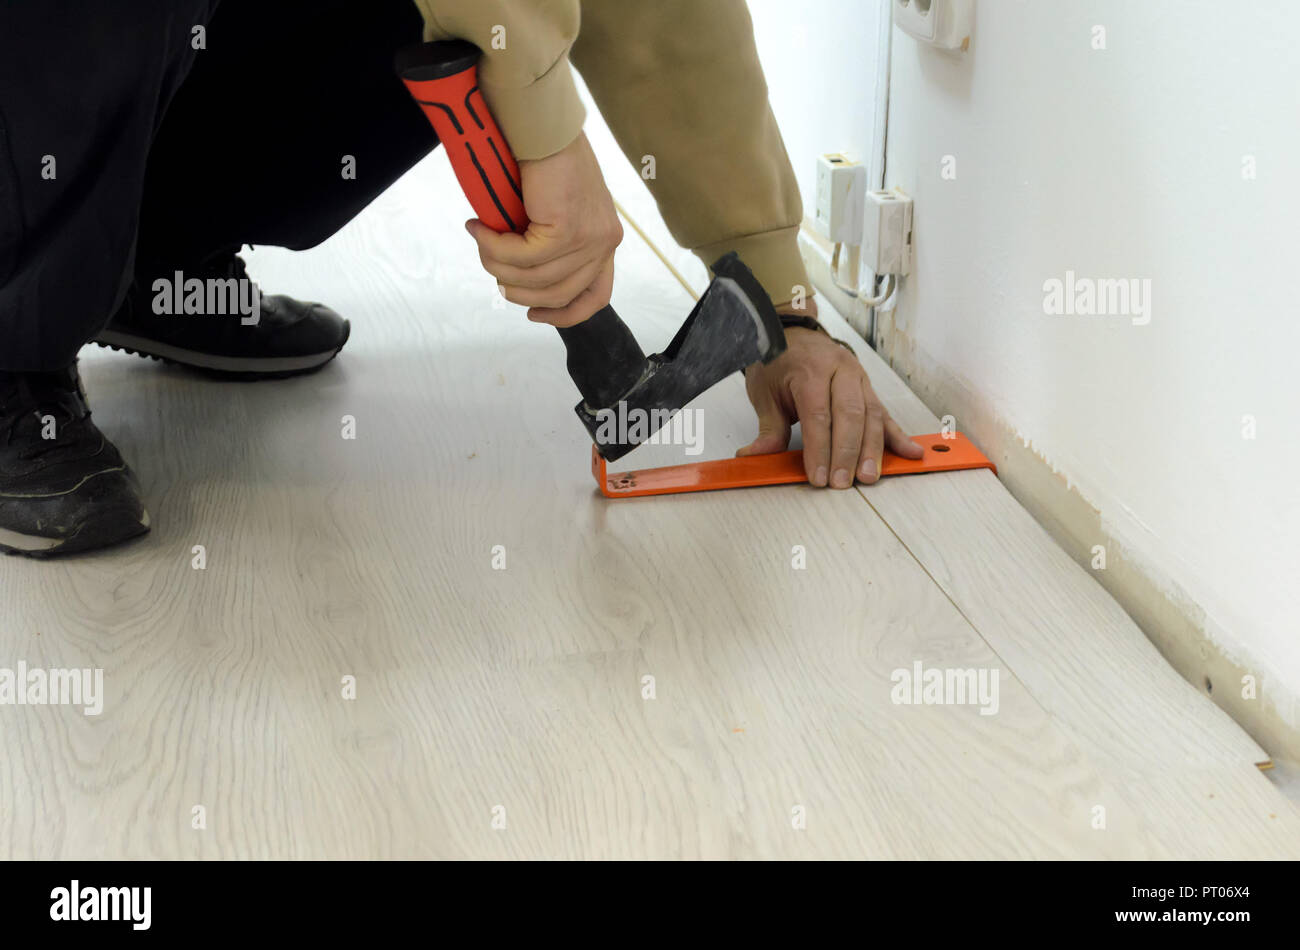 Renovation of an apartment, man laying laminate flooring in the room. - Stock Image